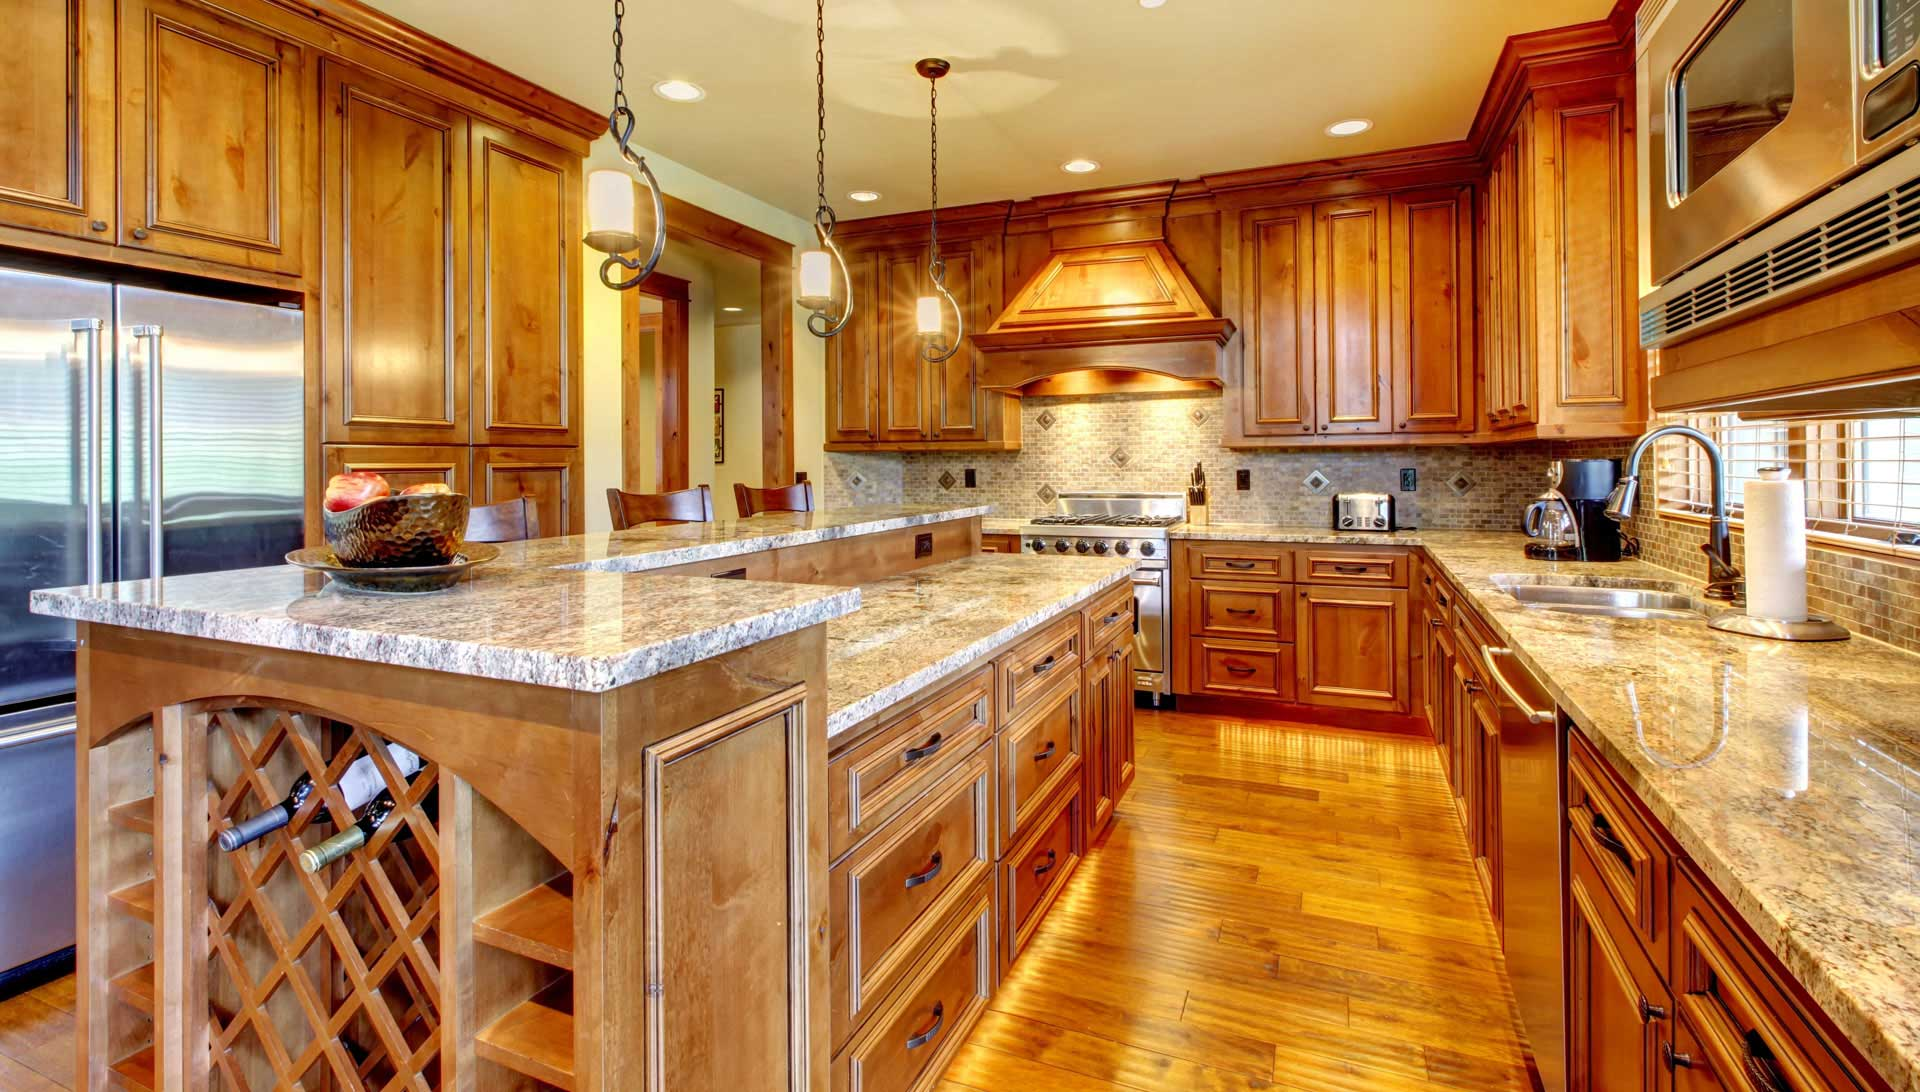 Kitchen Cabinet Refinishing Brooklyn Kitchen Cabinet Resurfacing Ny New Look Refacing